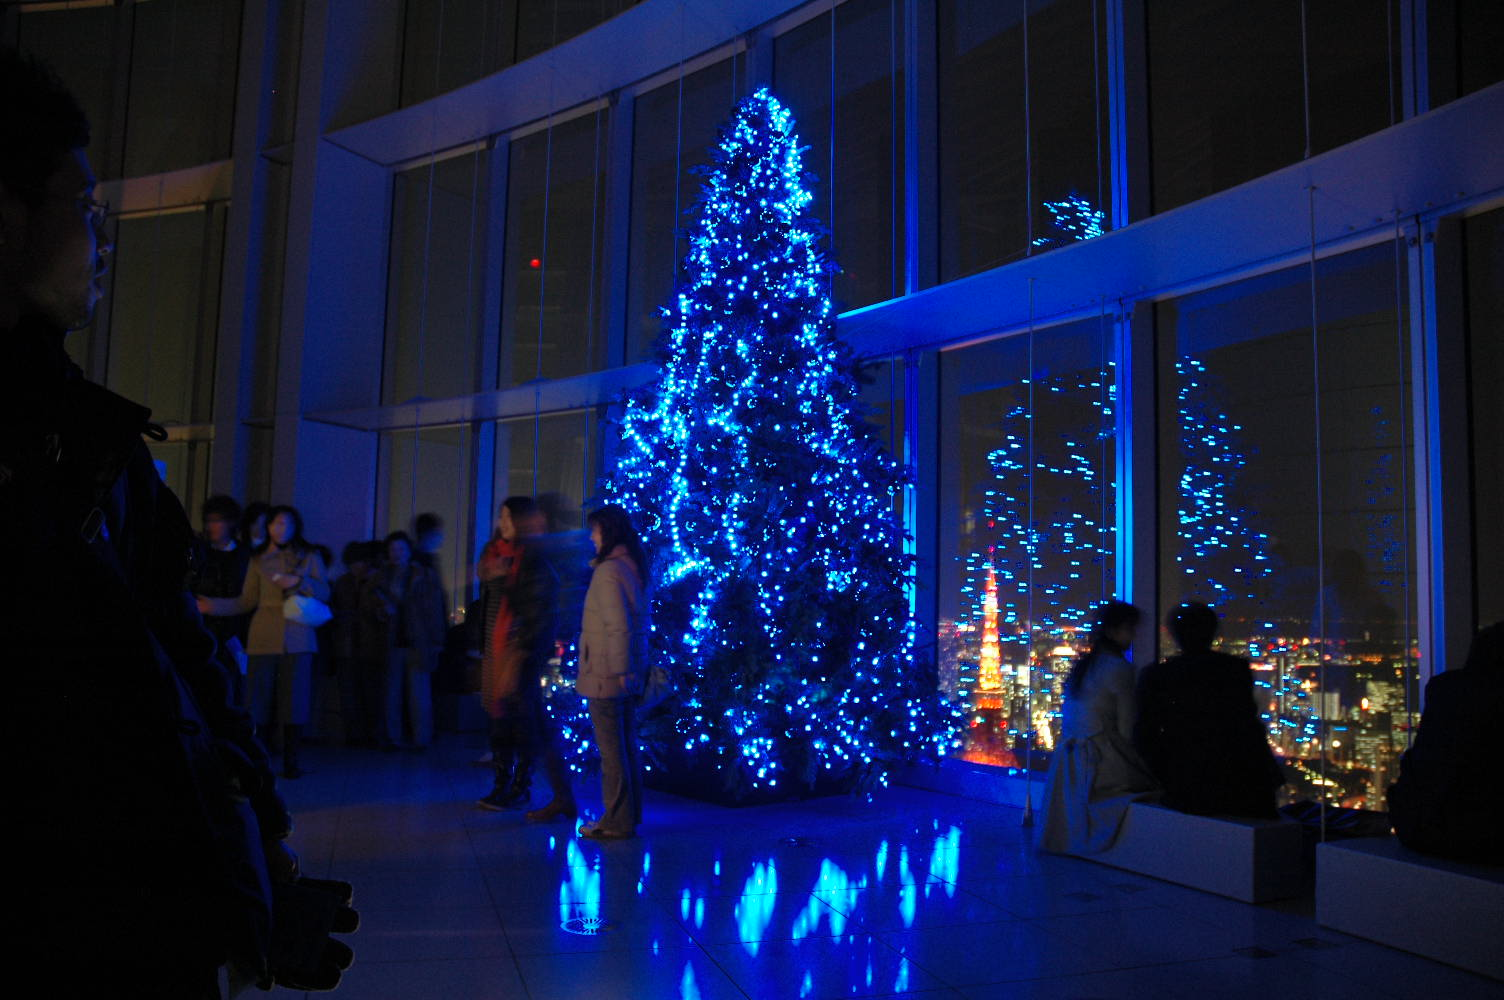 Comparison of Tokyo Midtown and Roppongi Hills Christmas Illuminations